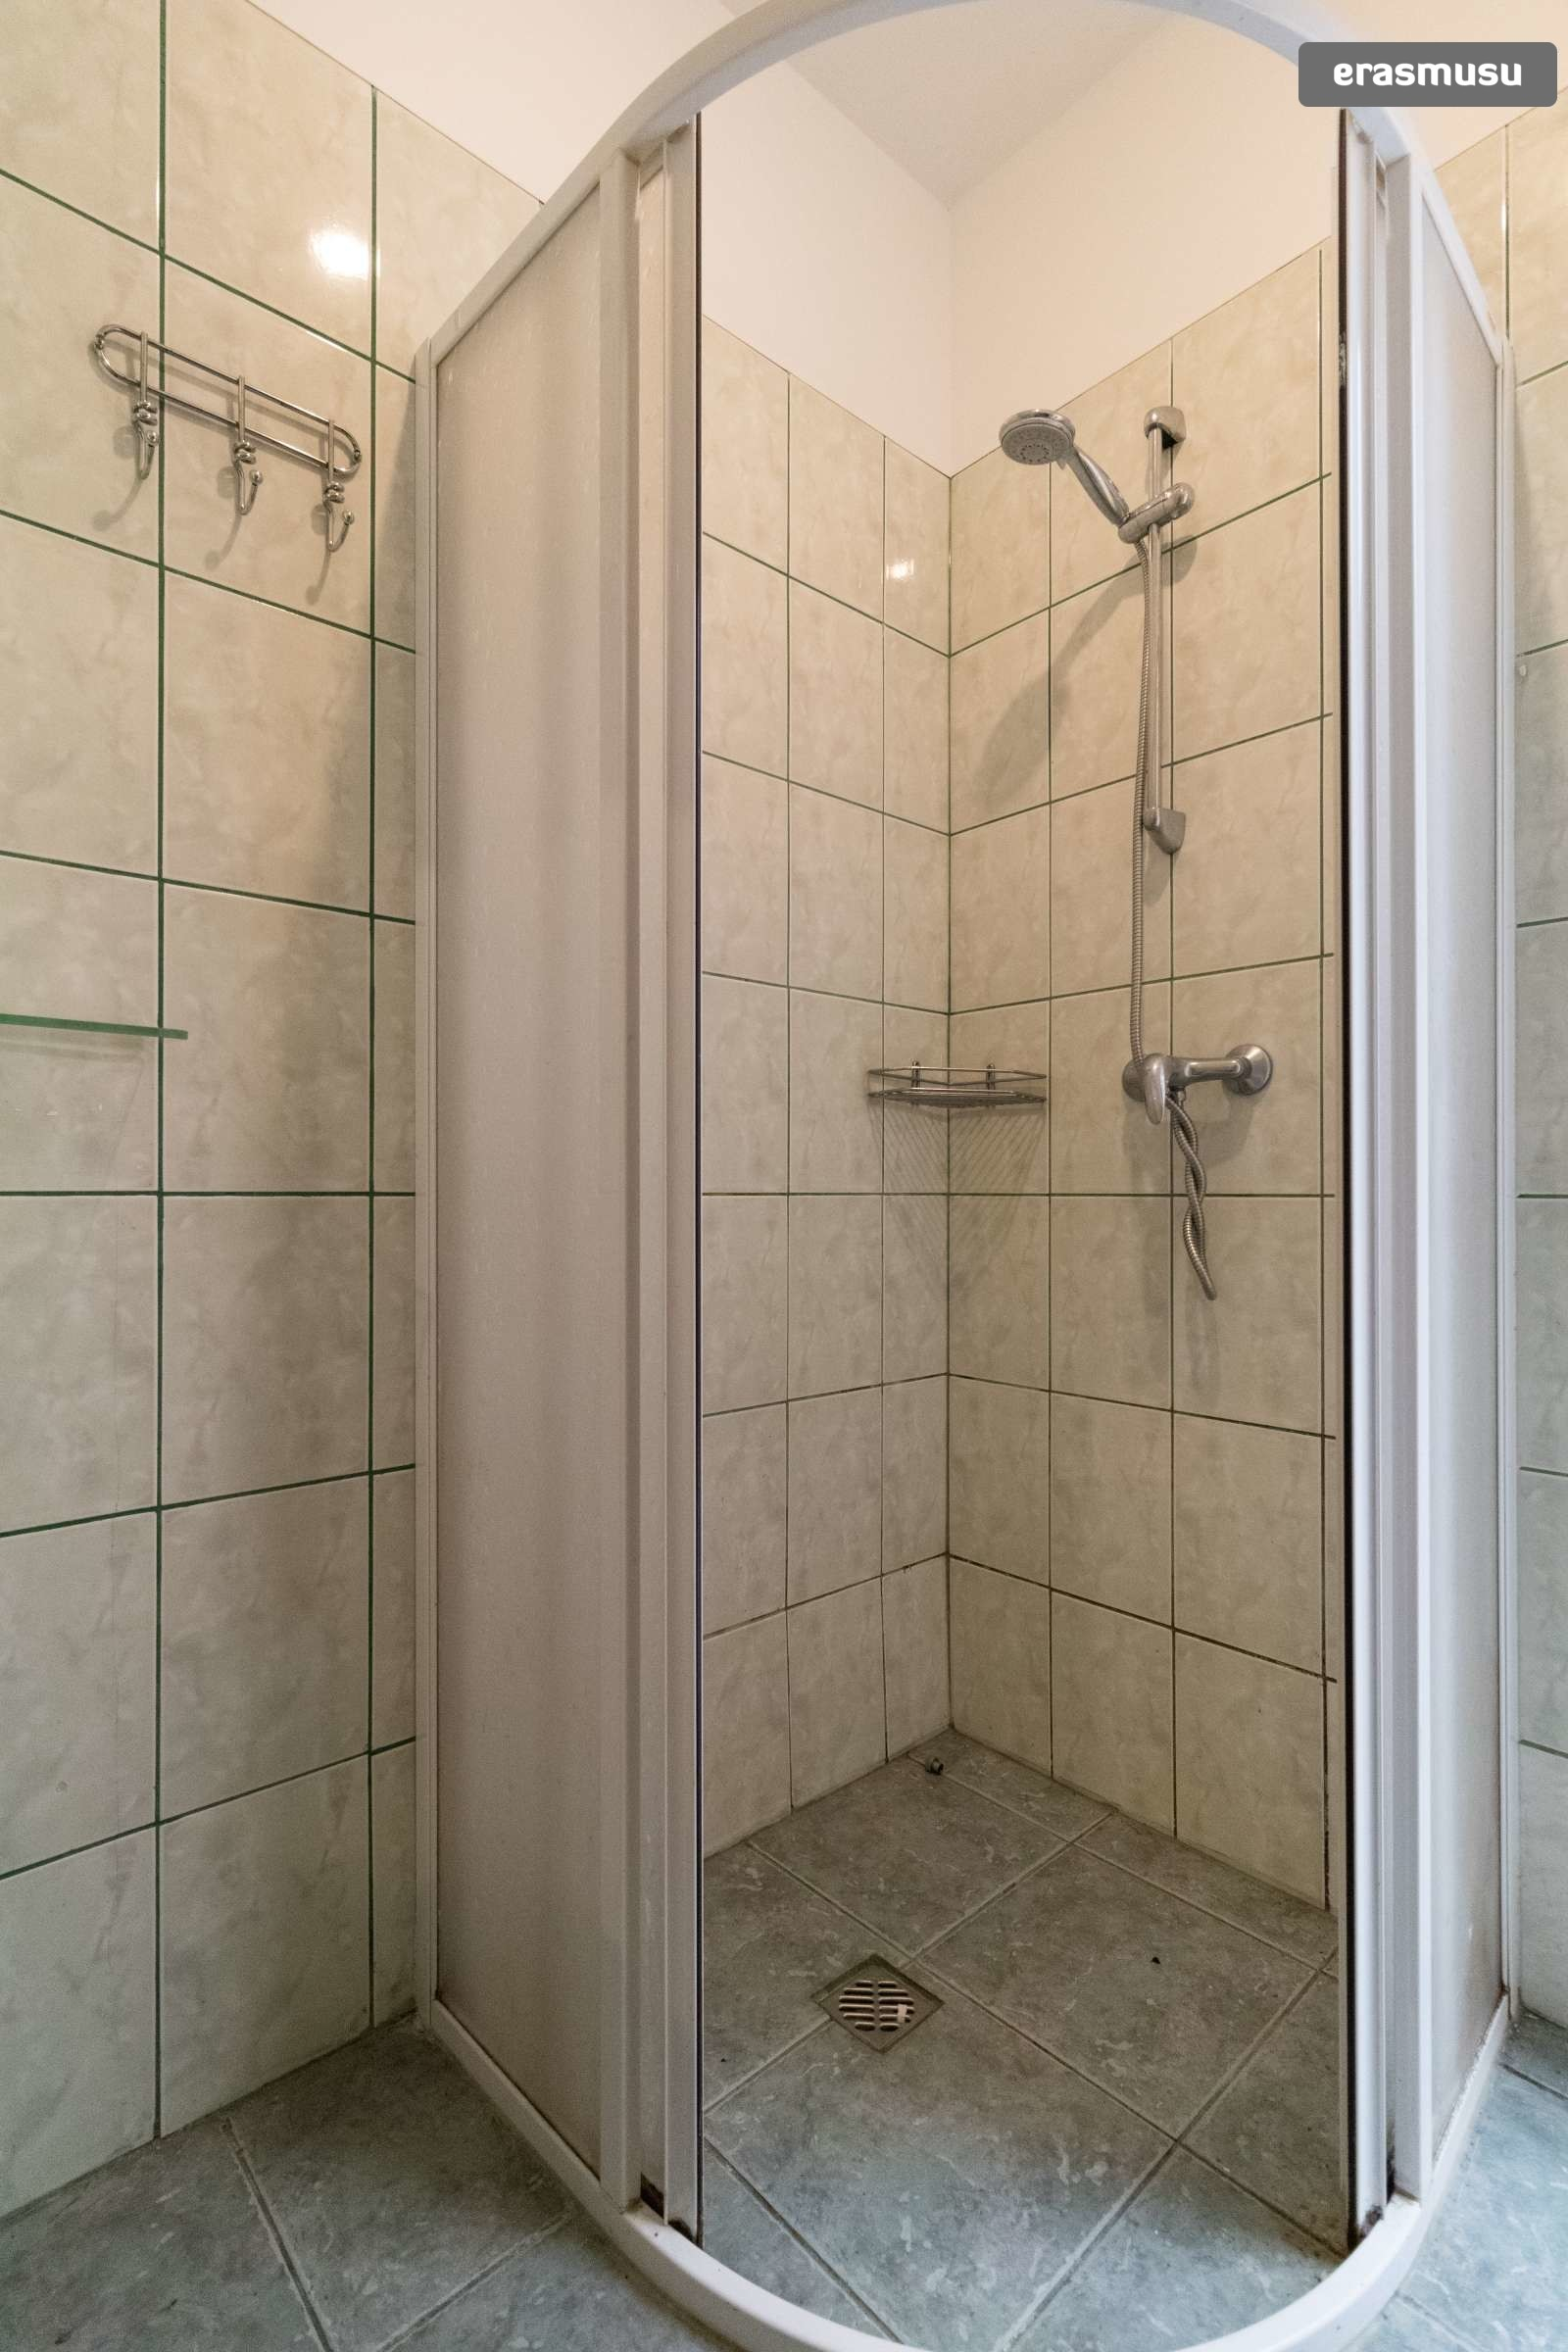 studio-apartment-rent-close-kobes-darzs-park-agenskalns-e4f134bf